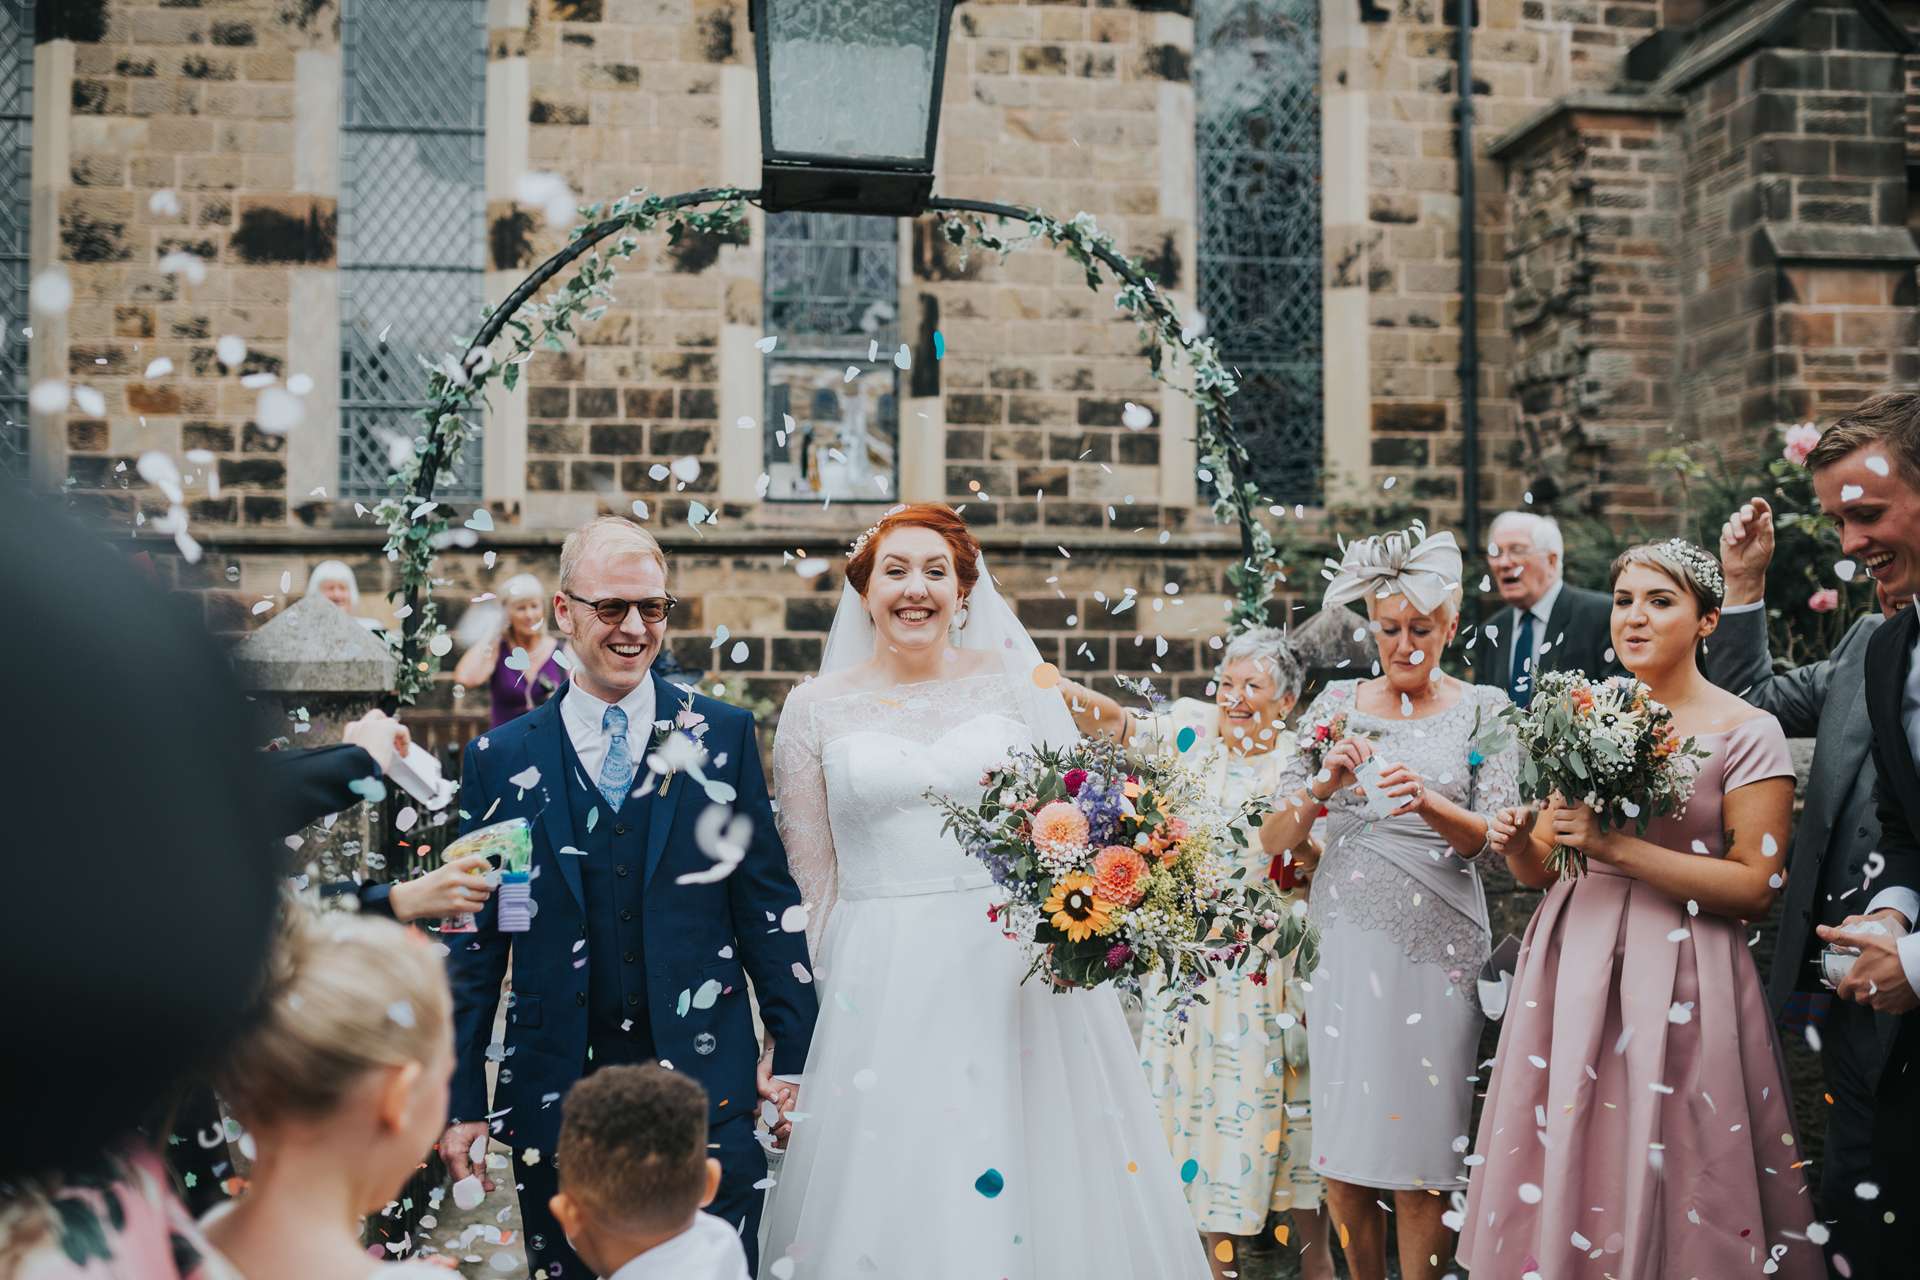 Guests surround bride and groom as they throw confetti at them at St Thomas Church Liverpool